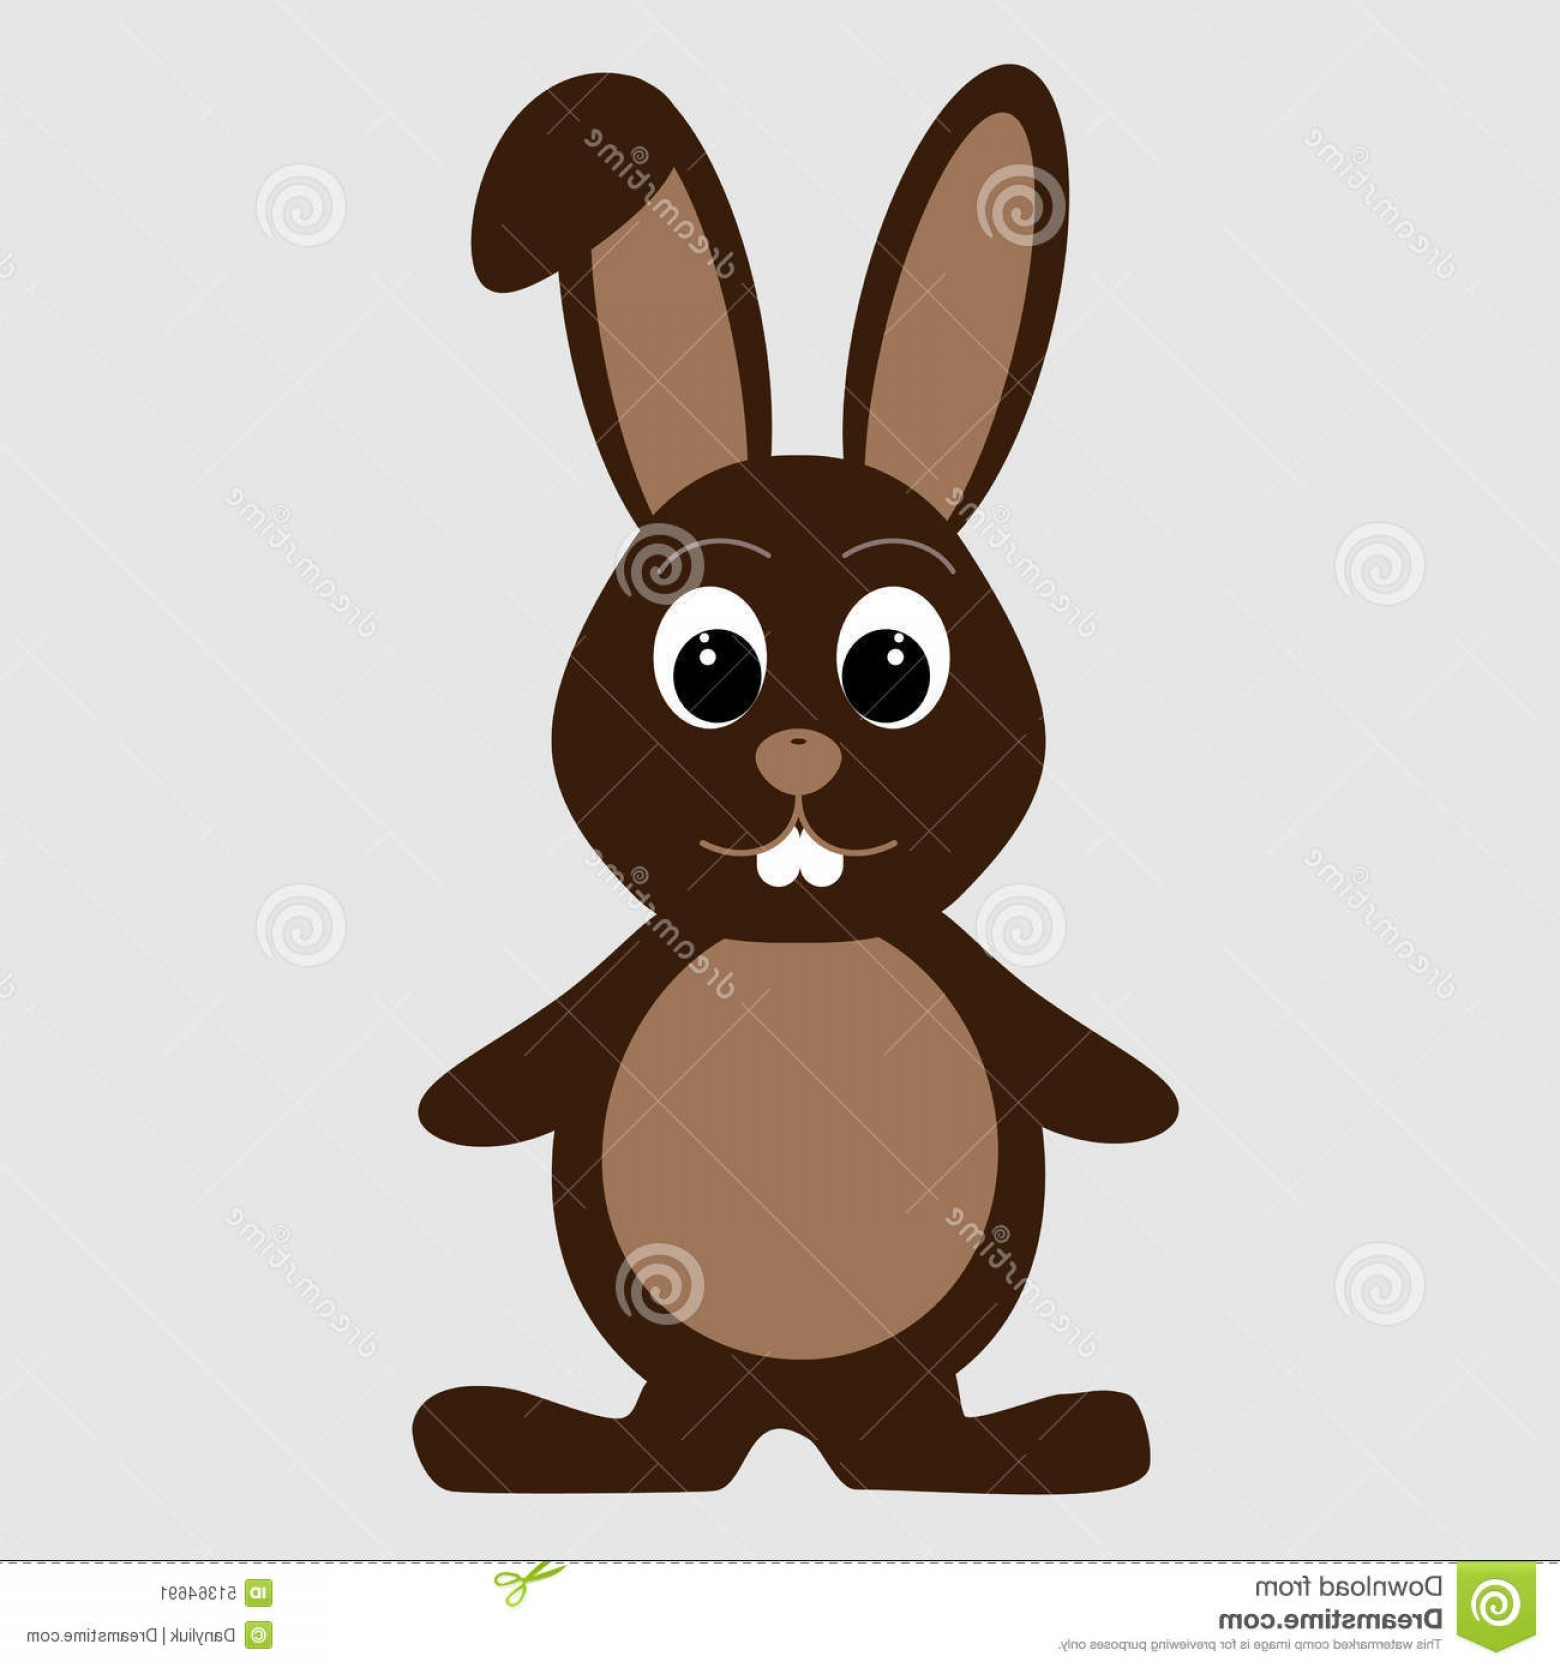 Chocolate Bunny Vector: Stock Illustration Cartoon Cute Rabbit Chocolate Chocolate Easter Bunny Image